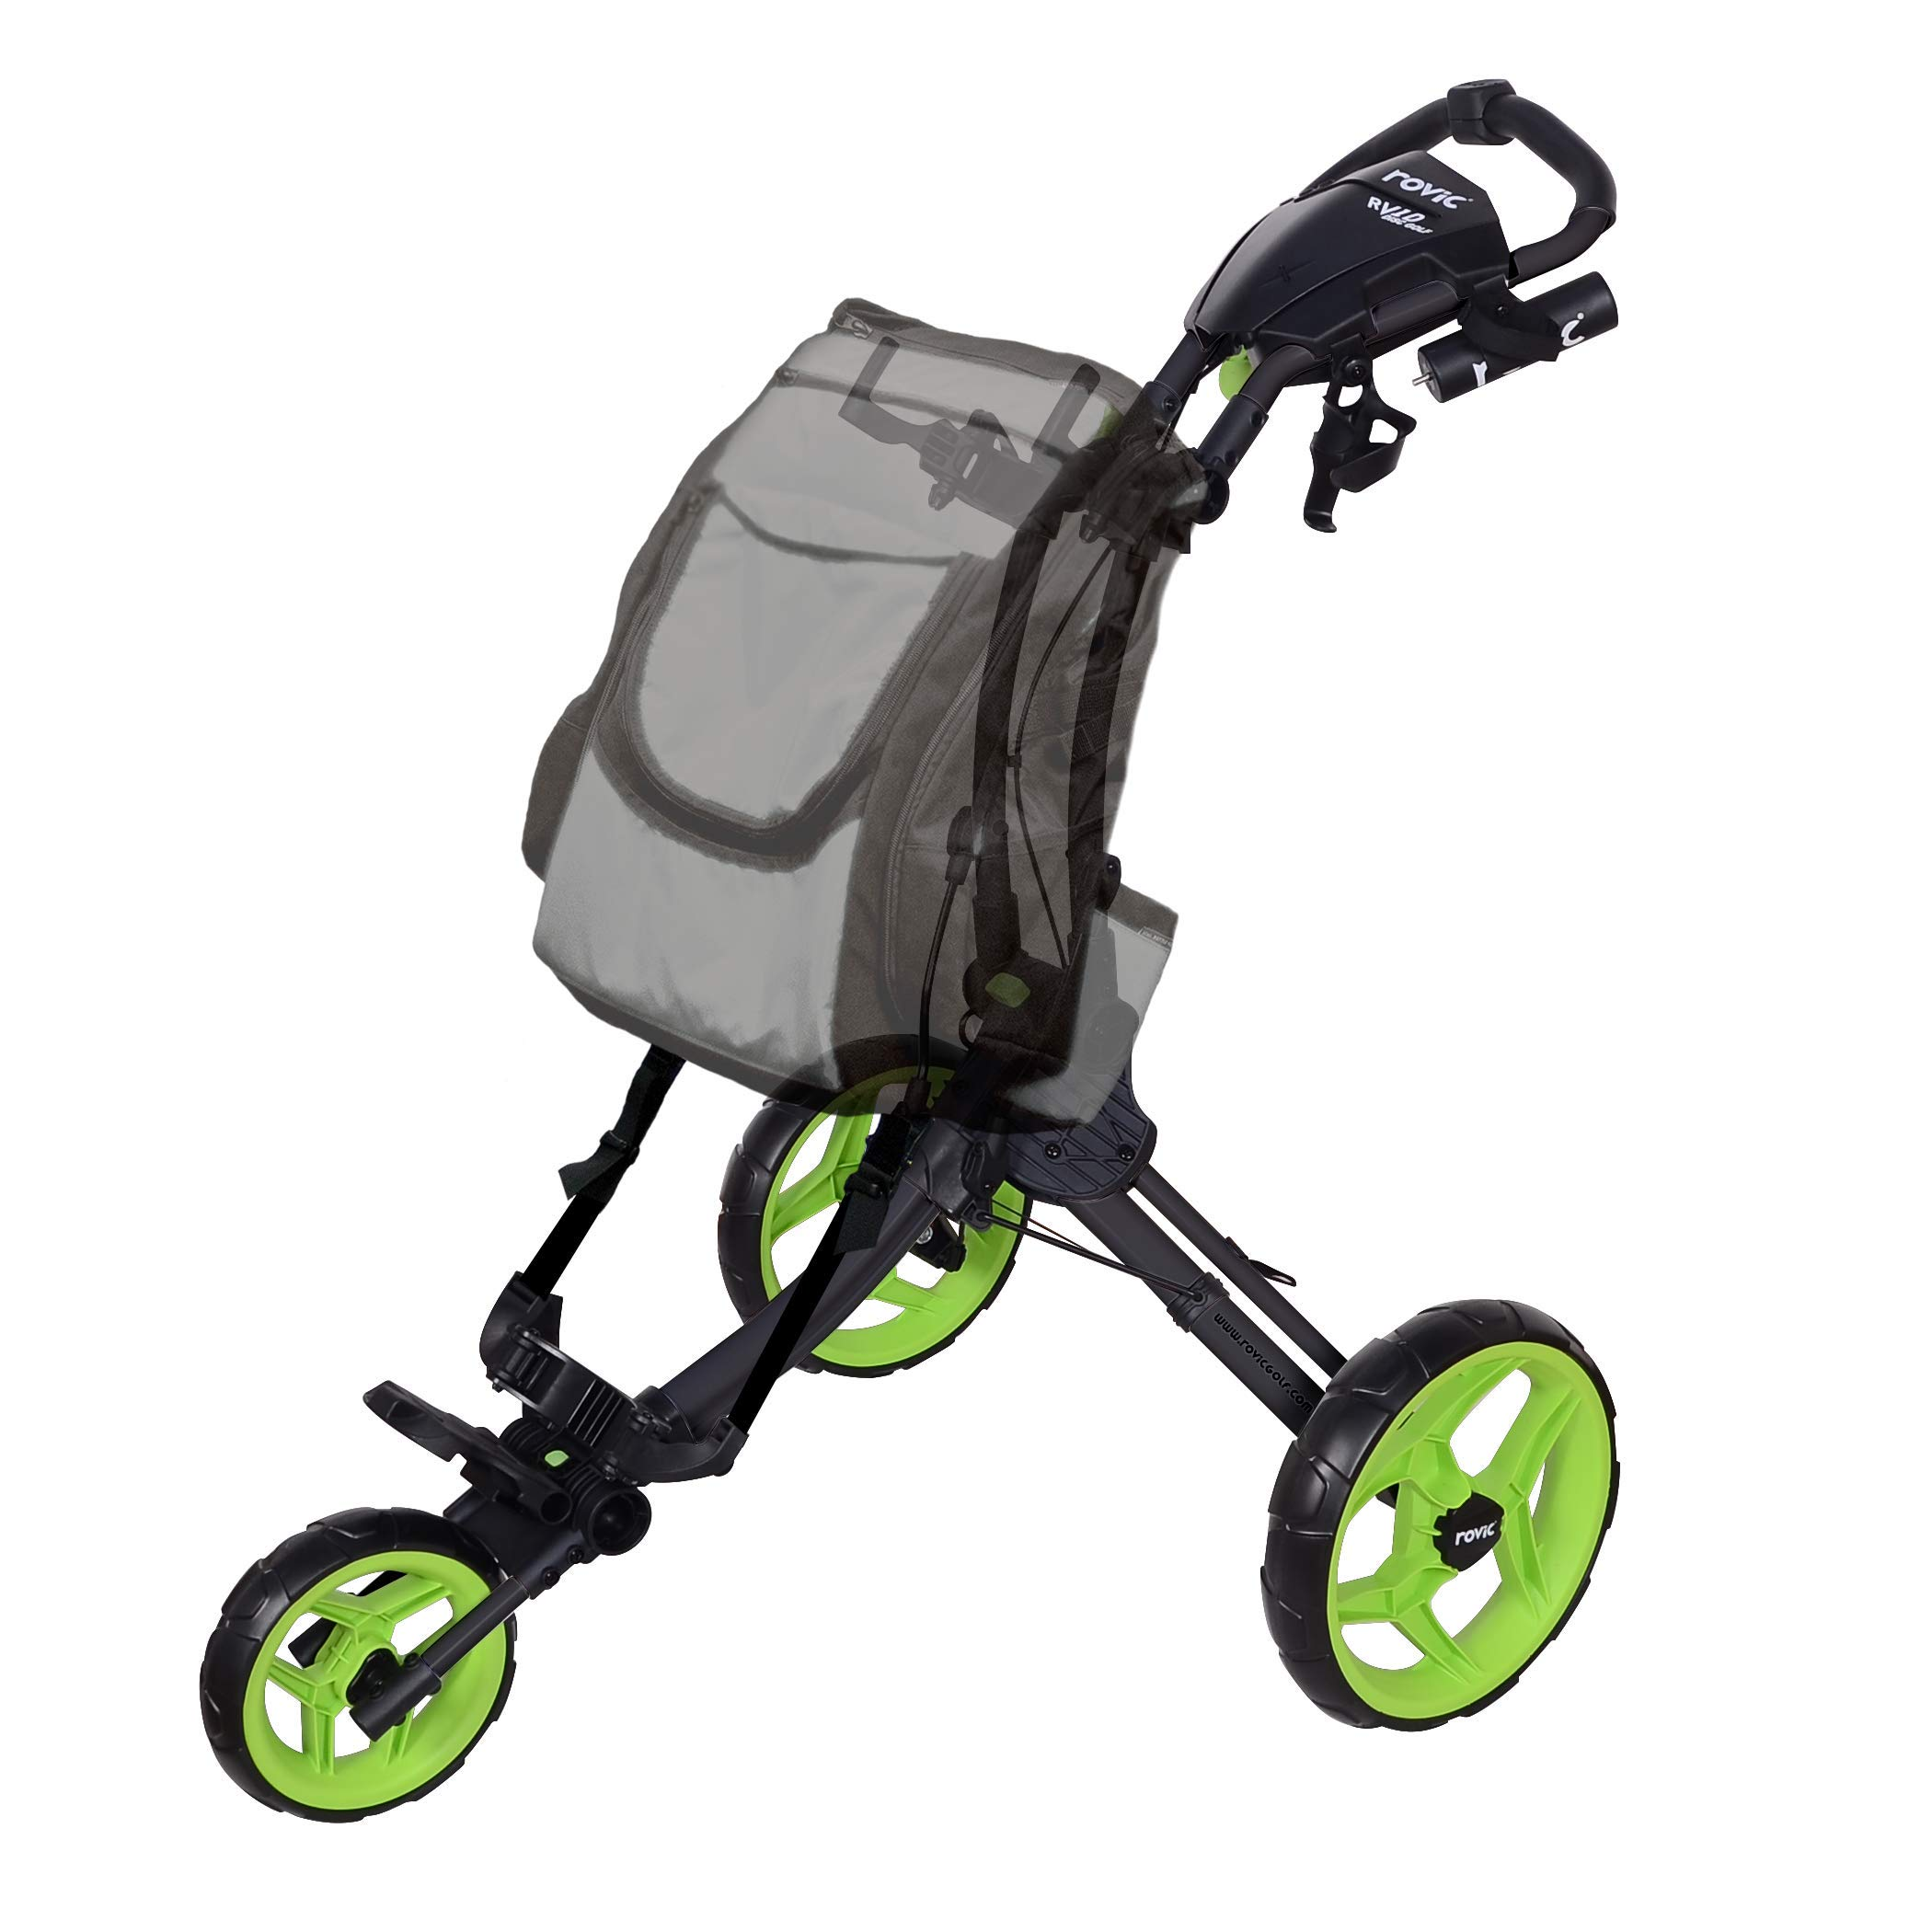 Rovic RV1D 3-Wheel Disc Golf Push Cart | Fits All Disc Golf Backpacks (Charcoal/Lime)